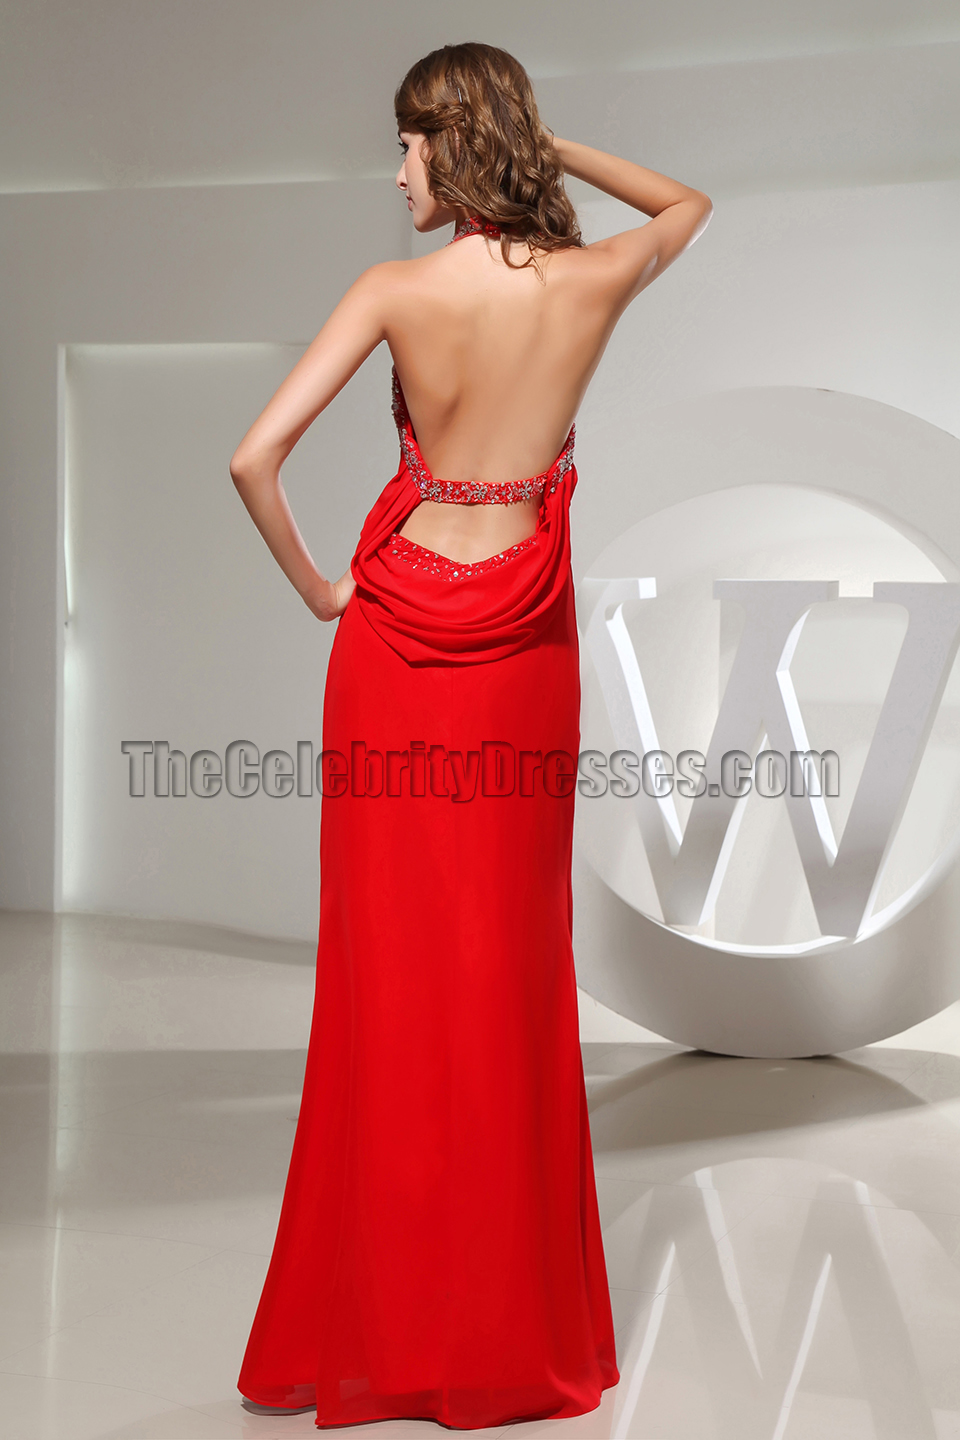 Backless Sexy cocktail dresses pictures forecast dress in everyday in 2019